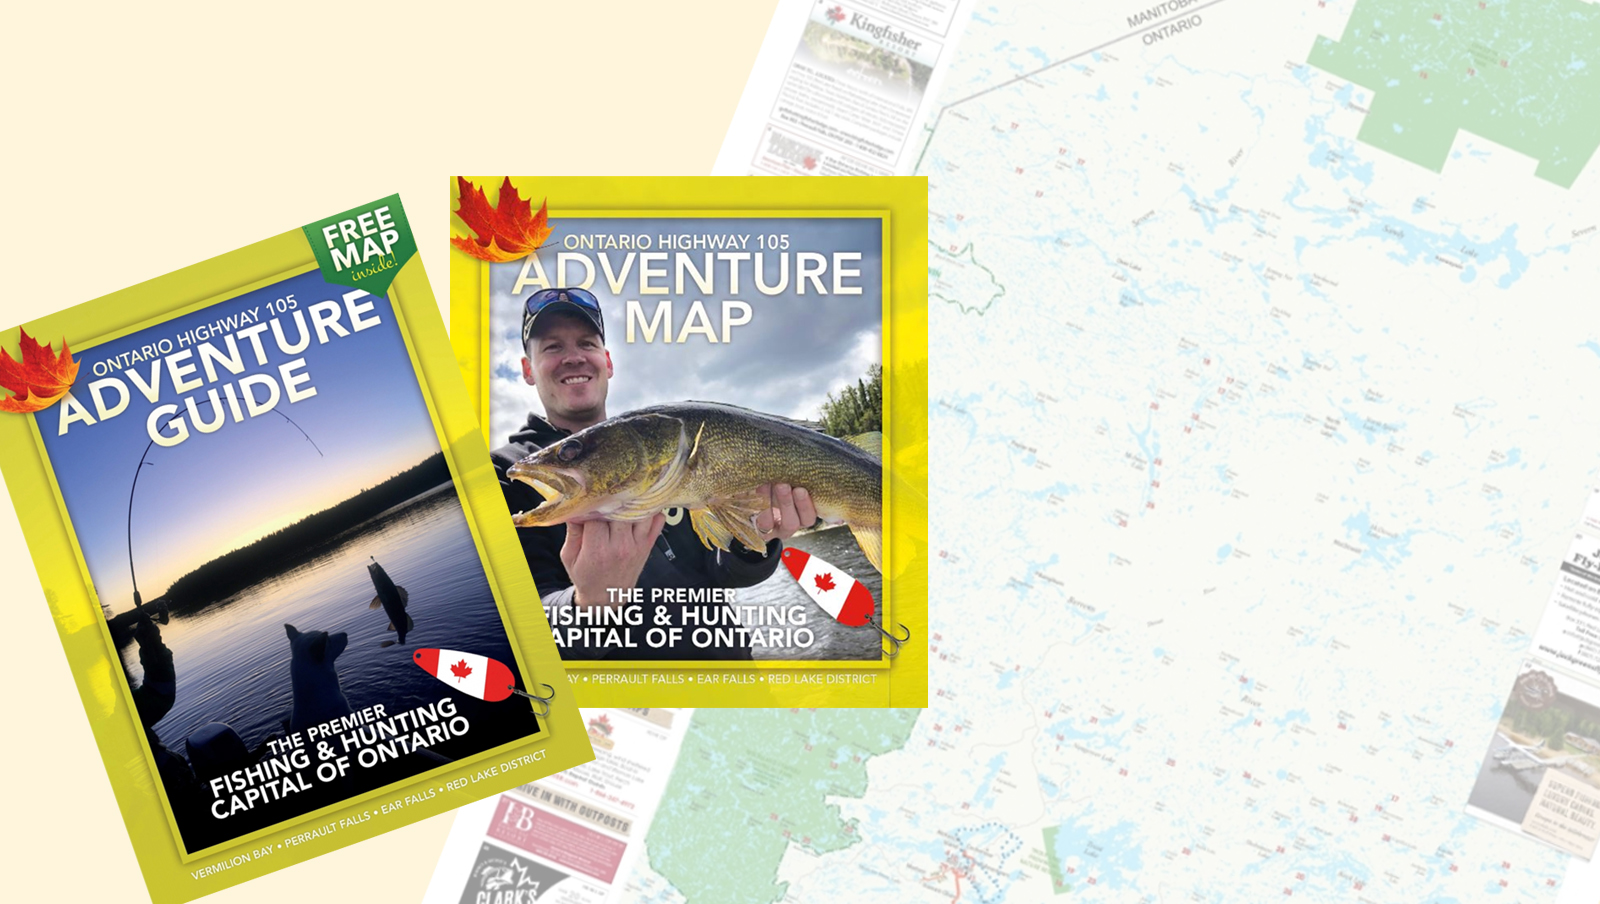 Hwy105 Free Map and Guide